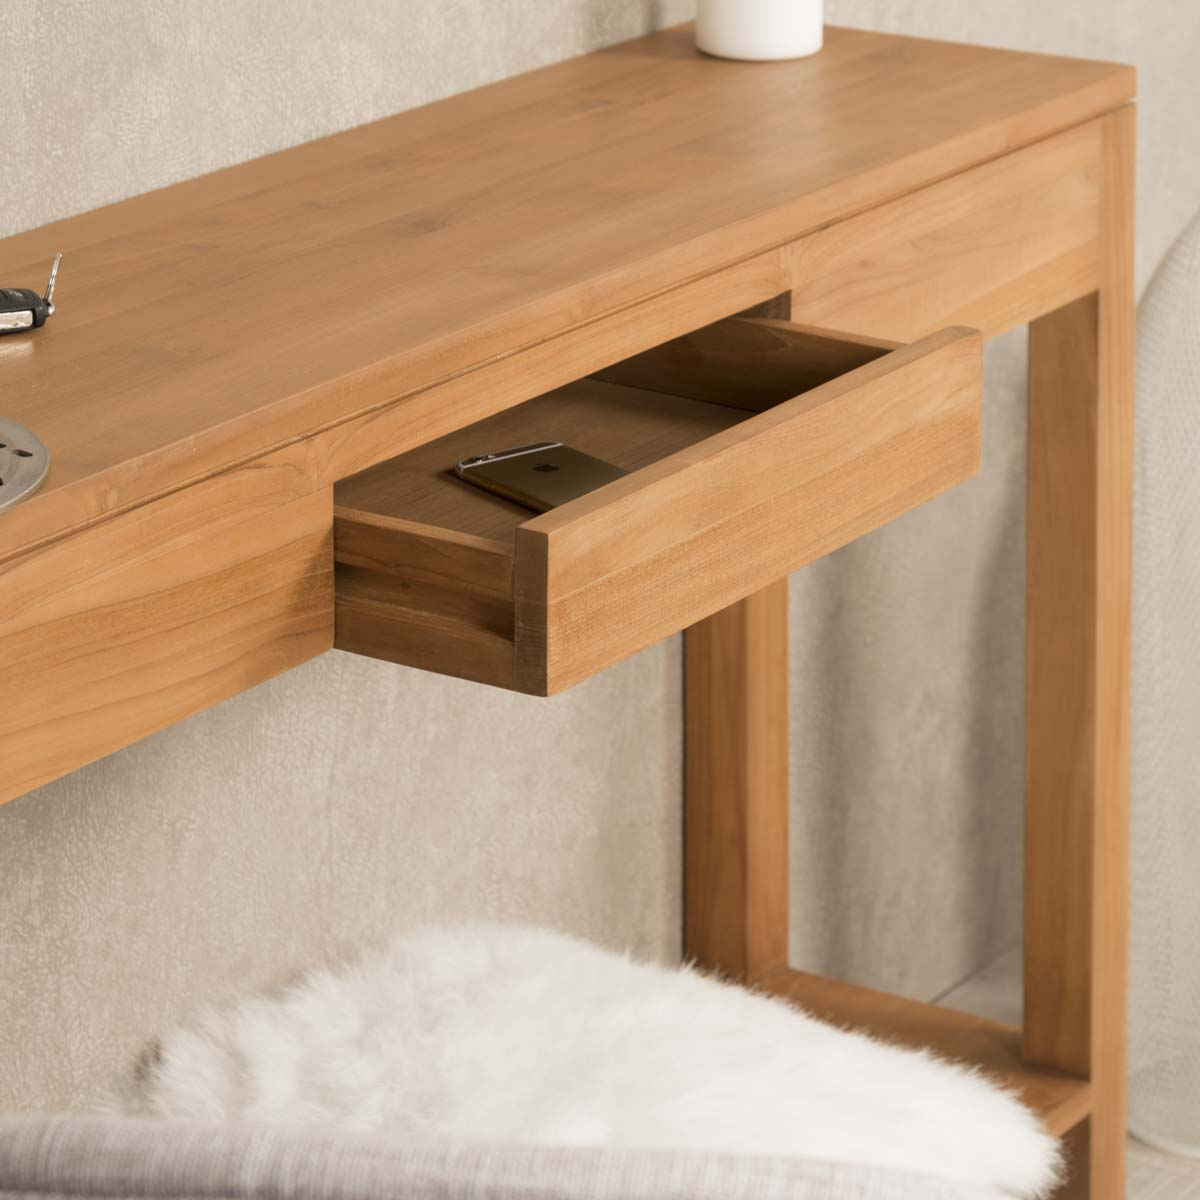 Console de salon en bois de teck massif moderne for Meuble d appoint salon